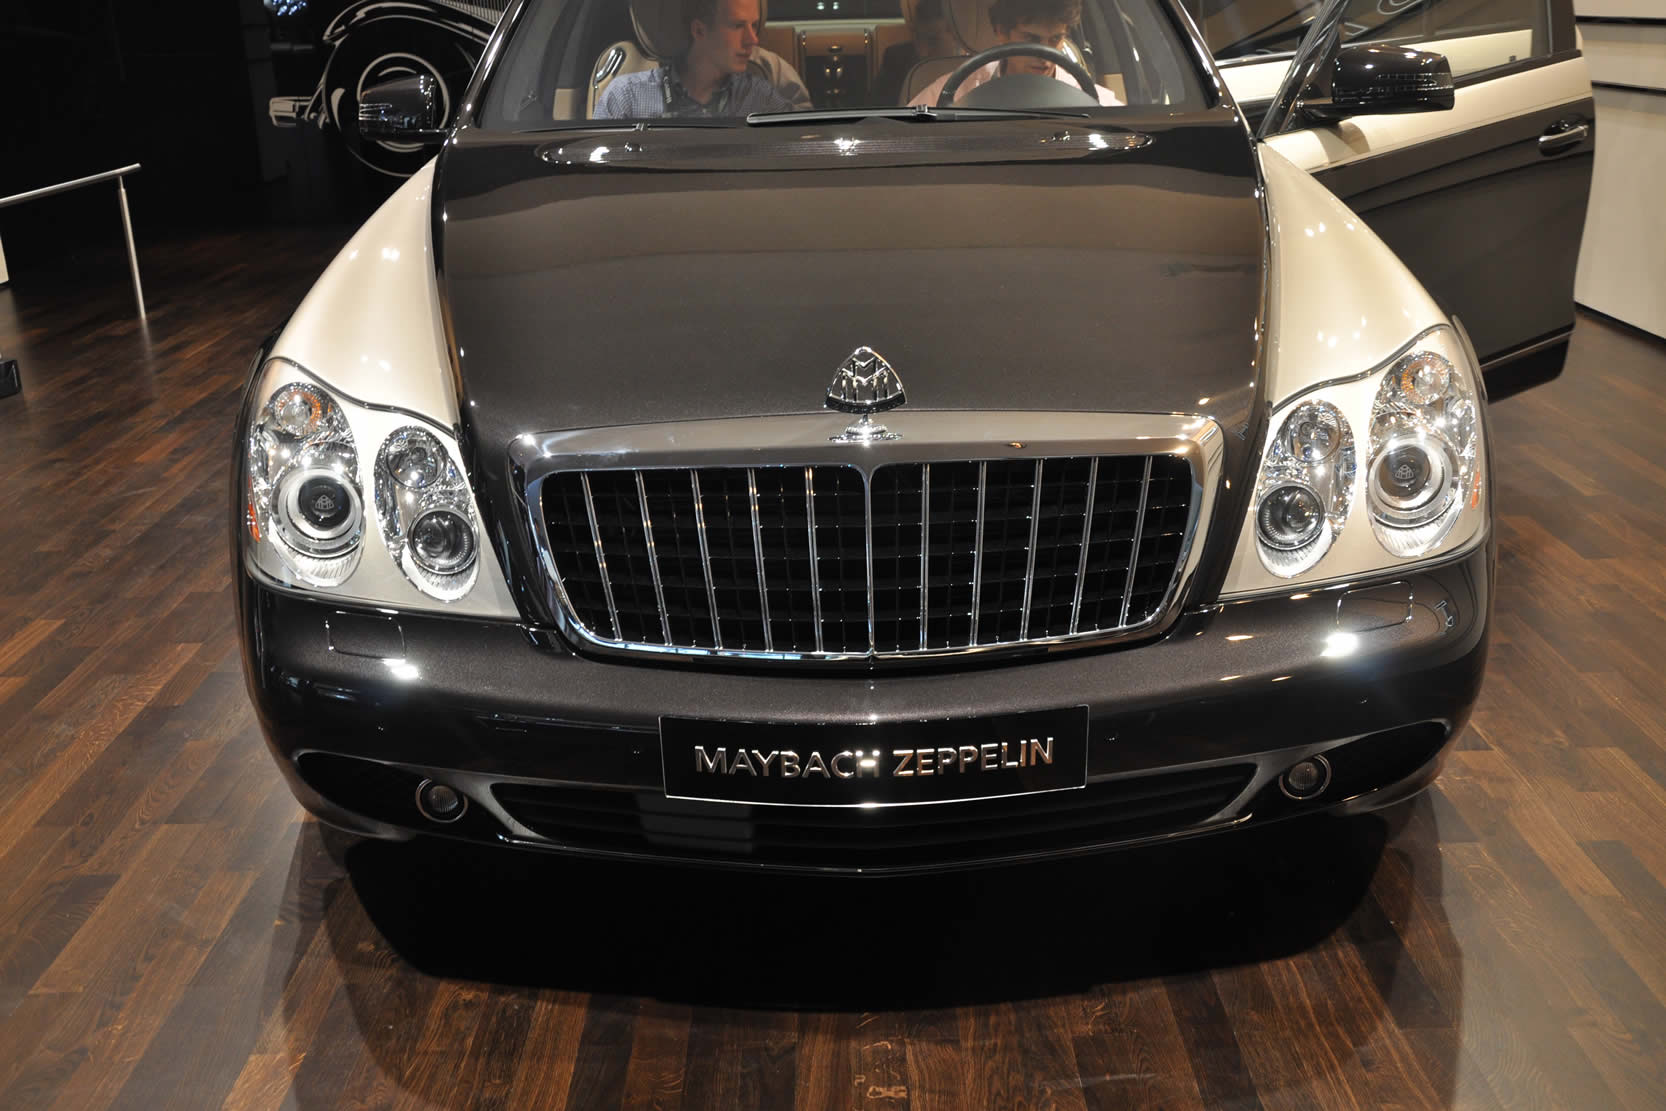 2017 Maybach Zeppelin photo - 2